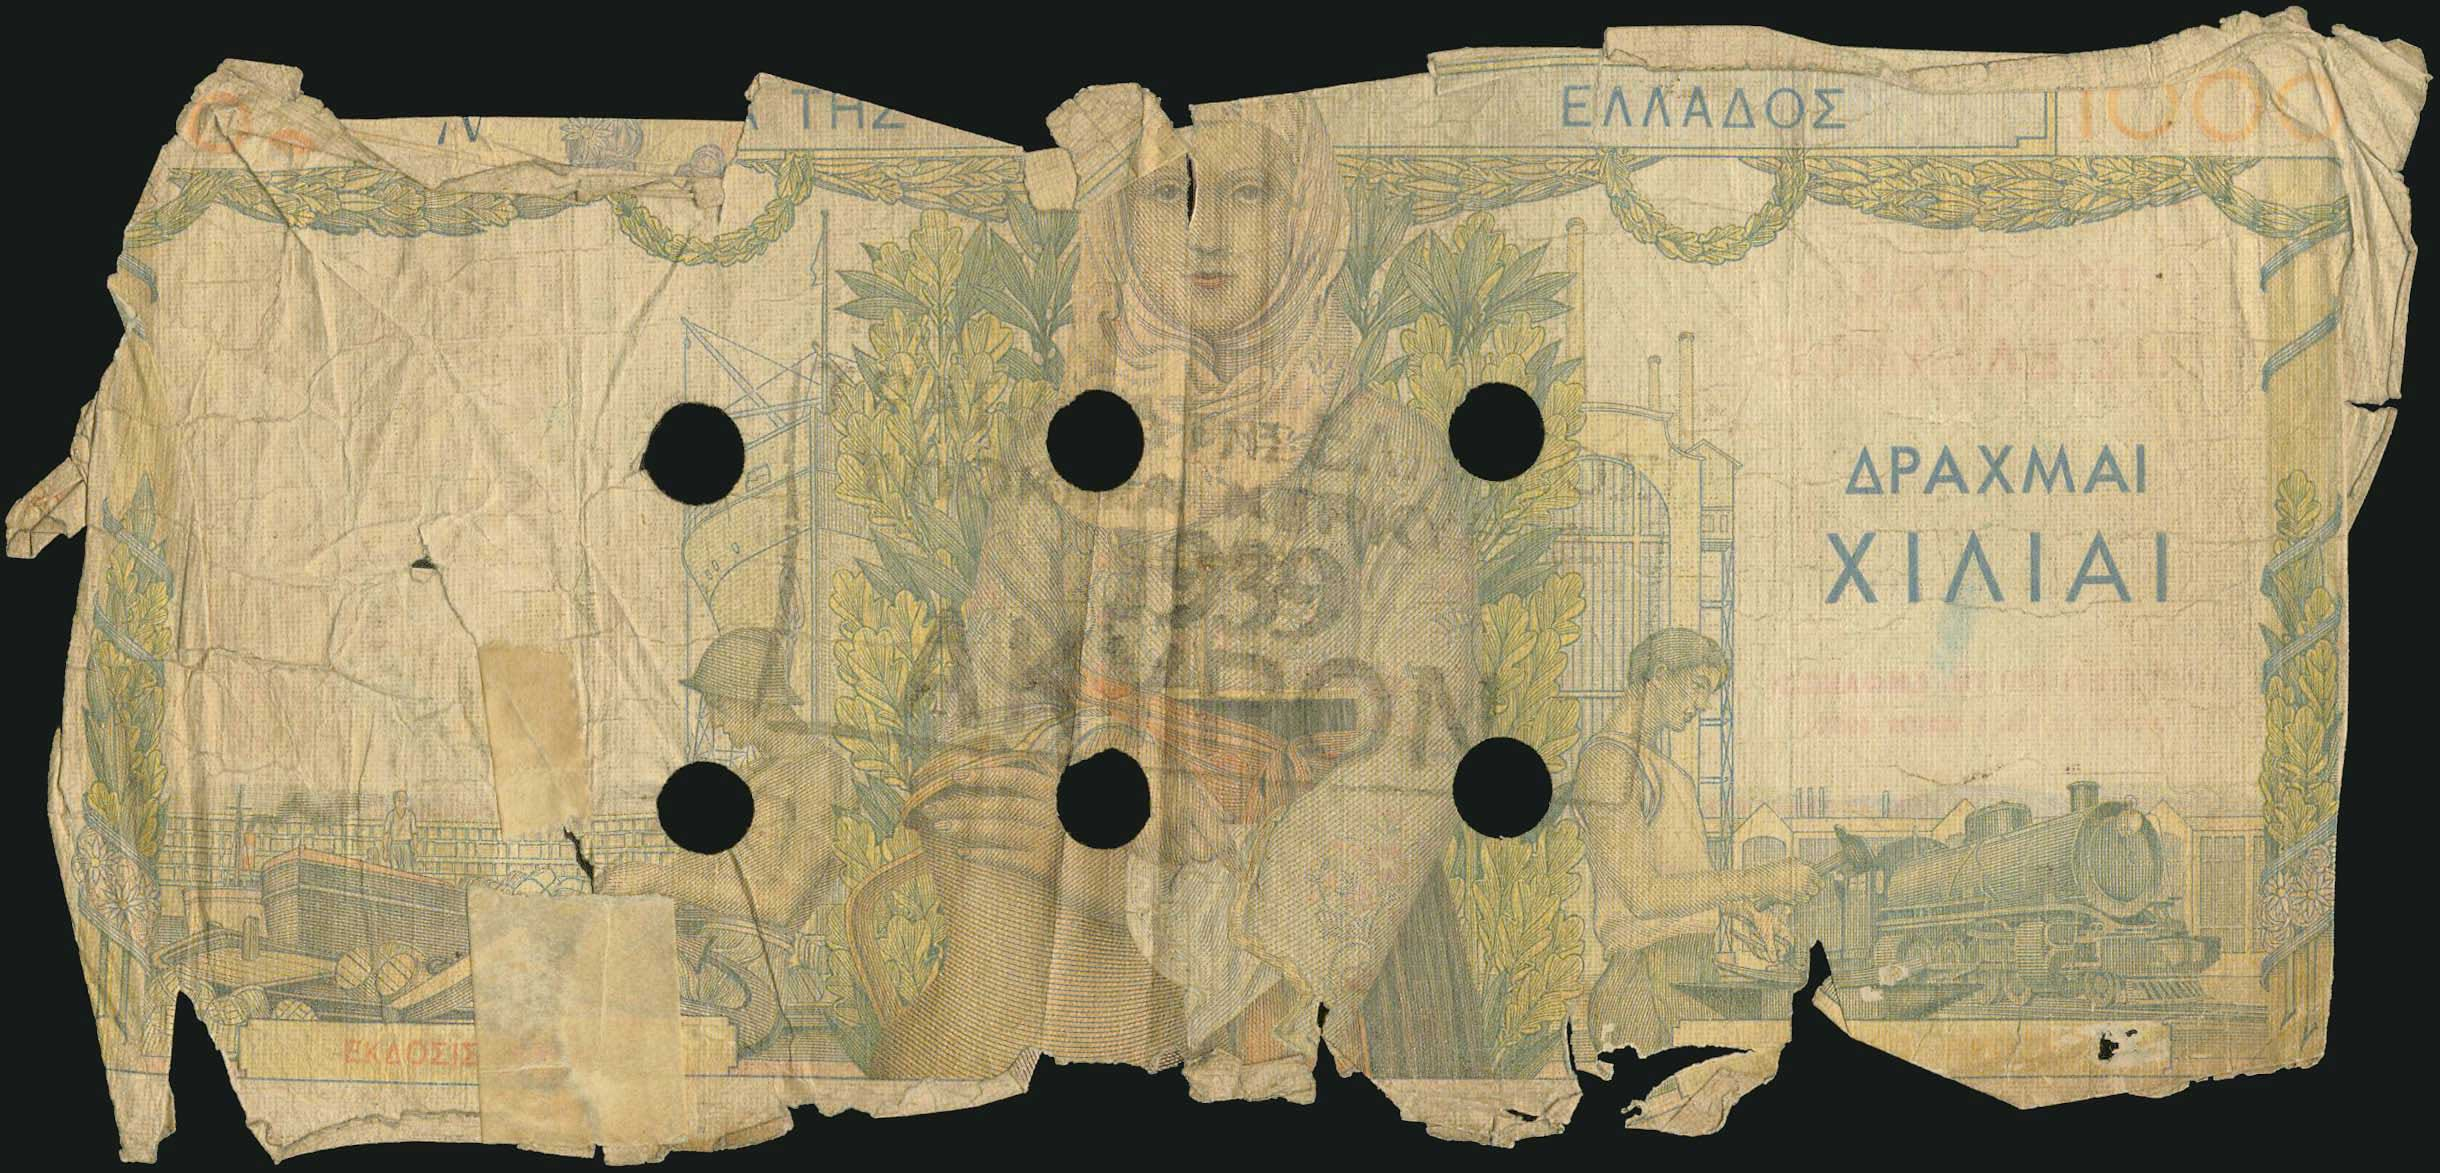 Lot 8449 - -  PAPER MONEY - BANKNOTES 1941 town cachets (re-issue) -  A. Karamitsos Public & Live Bid Auction 649 Coins, Medals & Banknotes